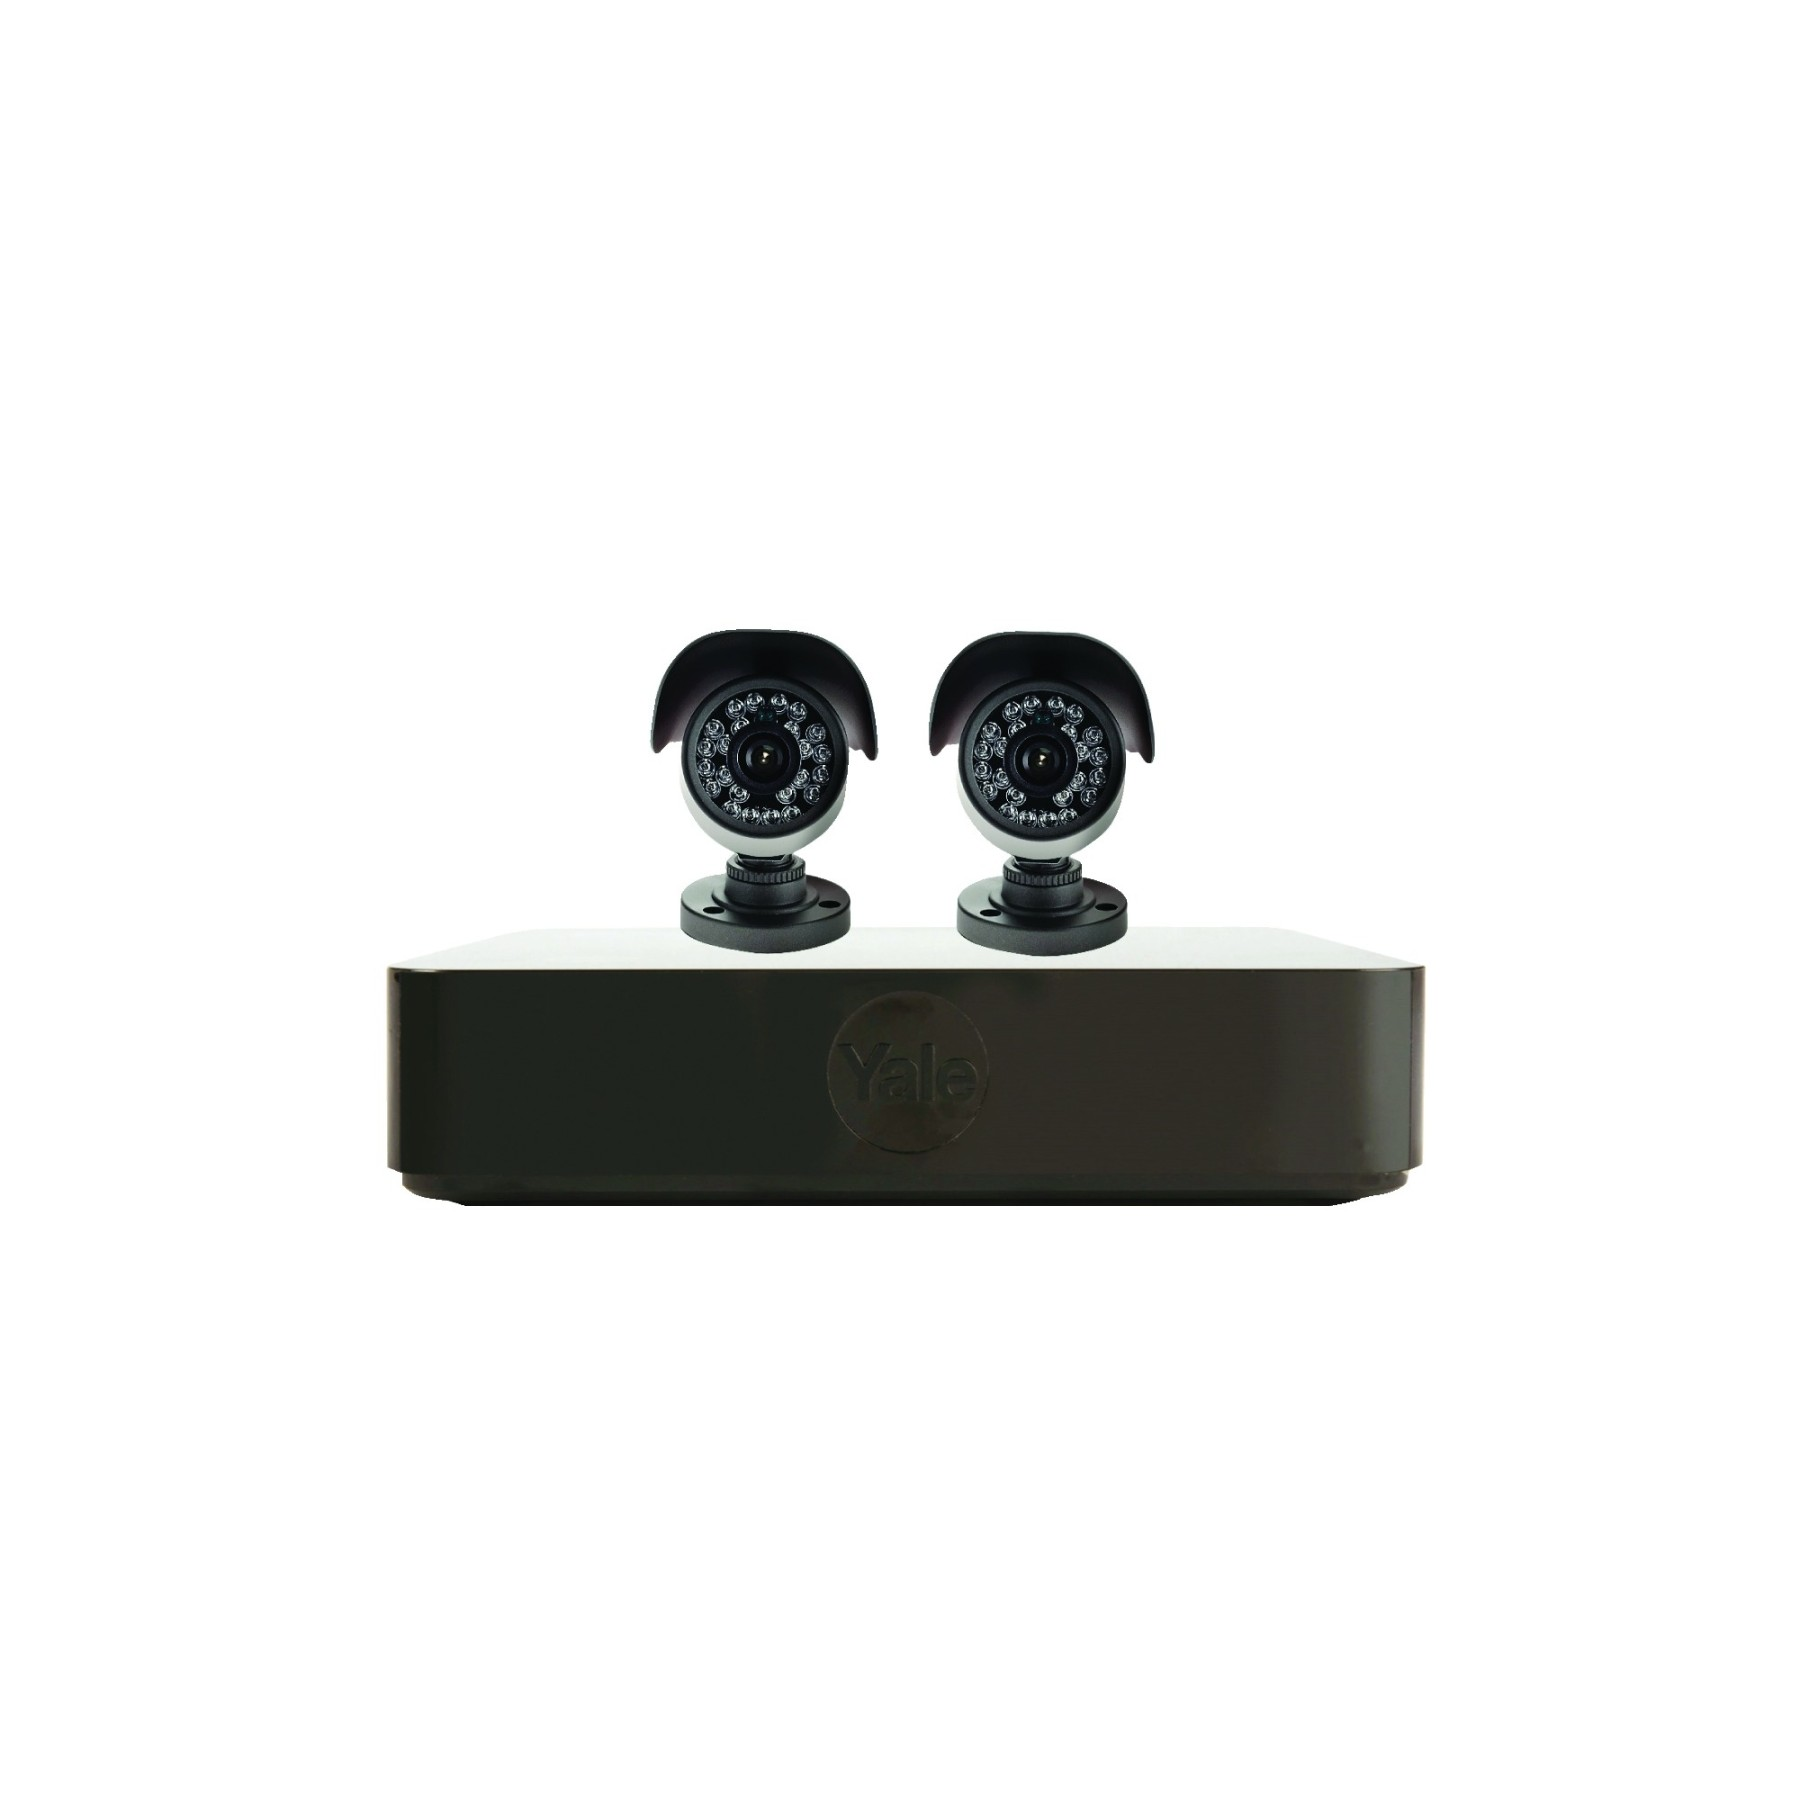 Yale 720p H4b Hd Dvr 4 Channels Cctv Kit With 2 Cameras